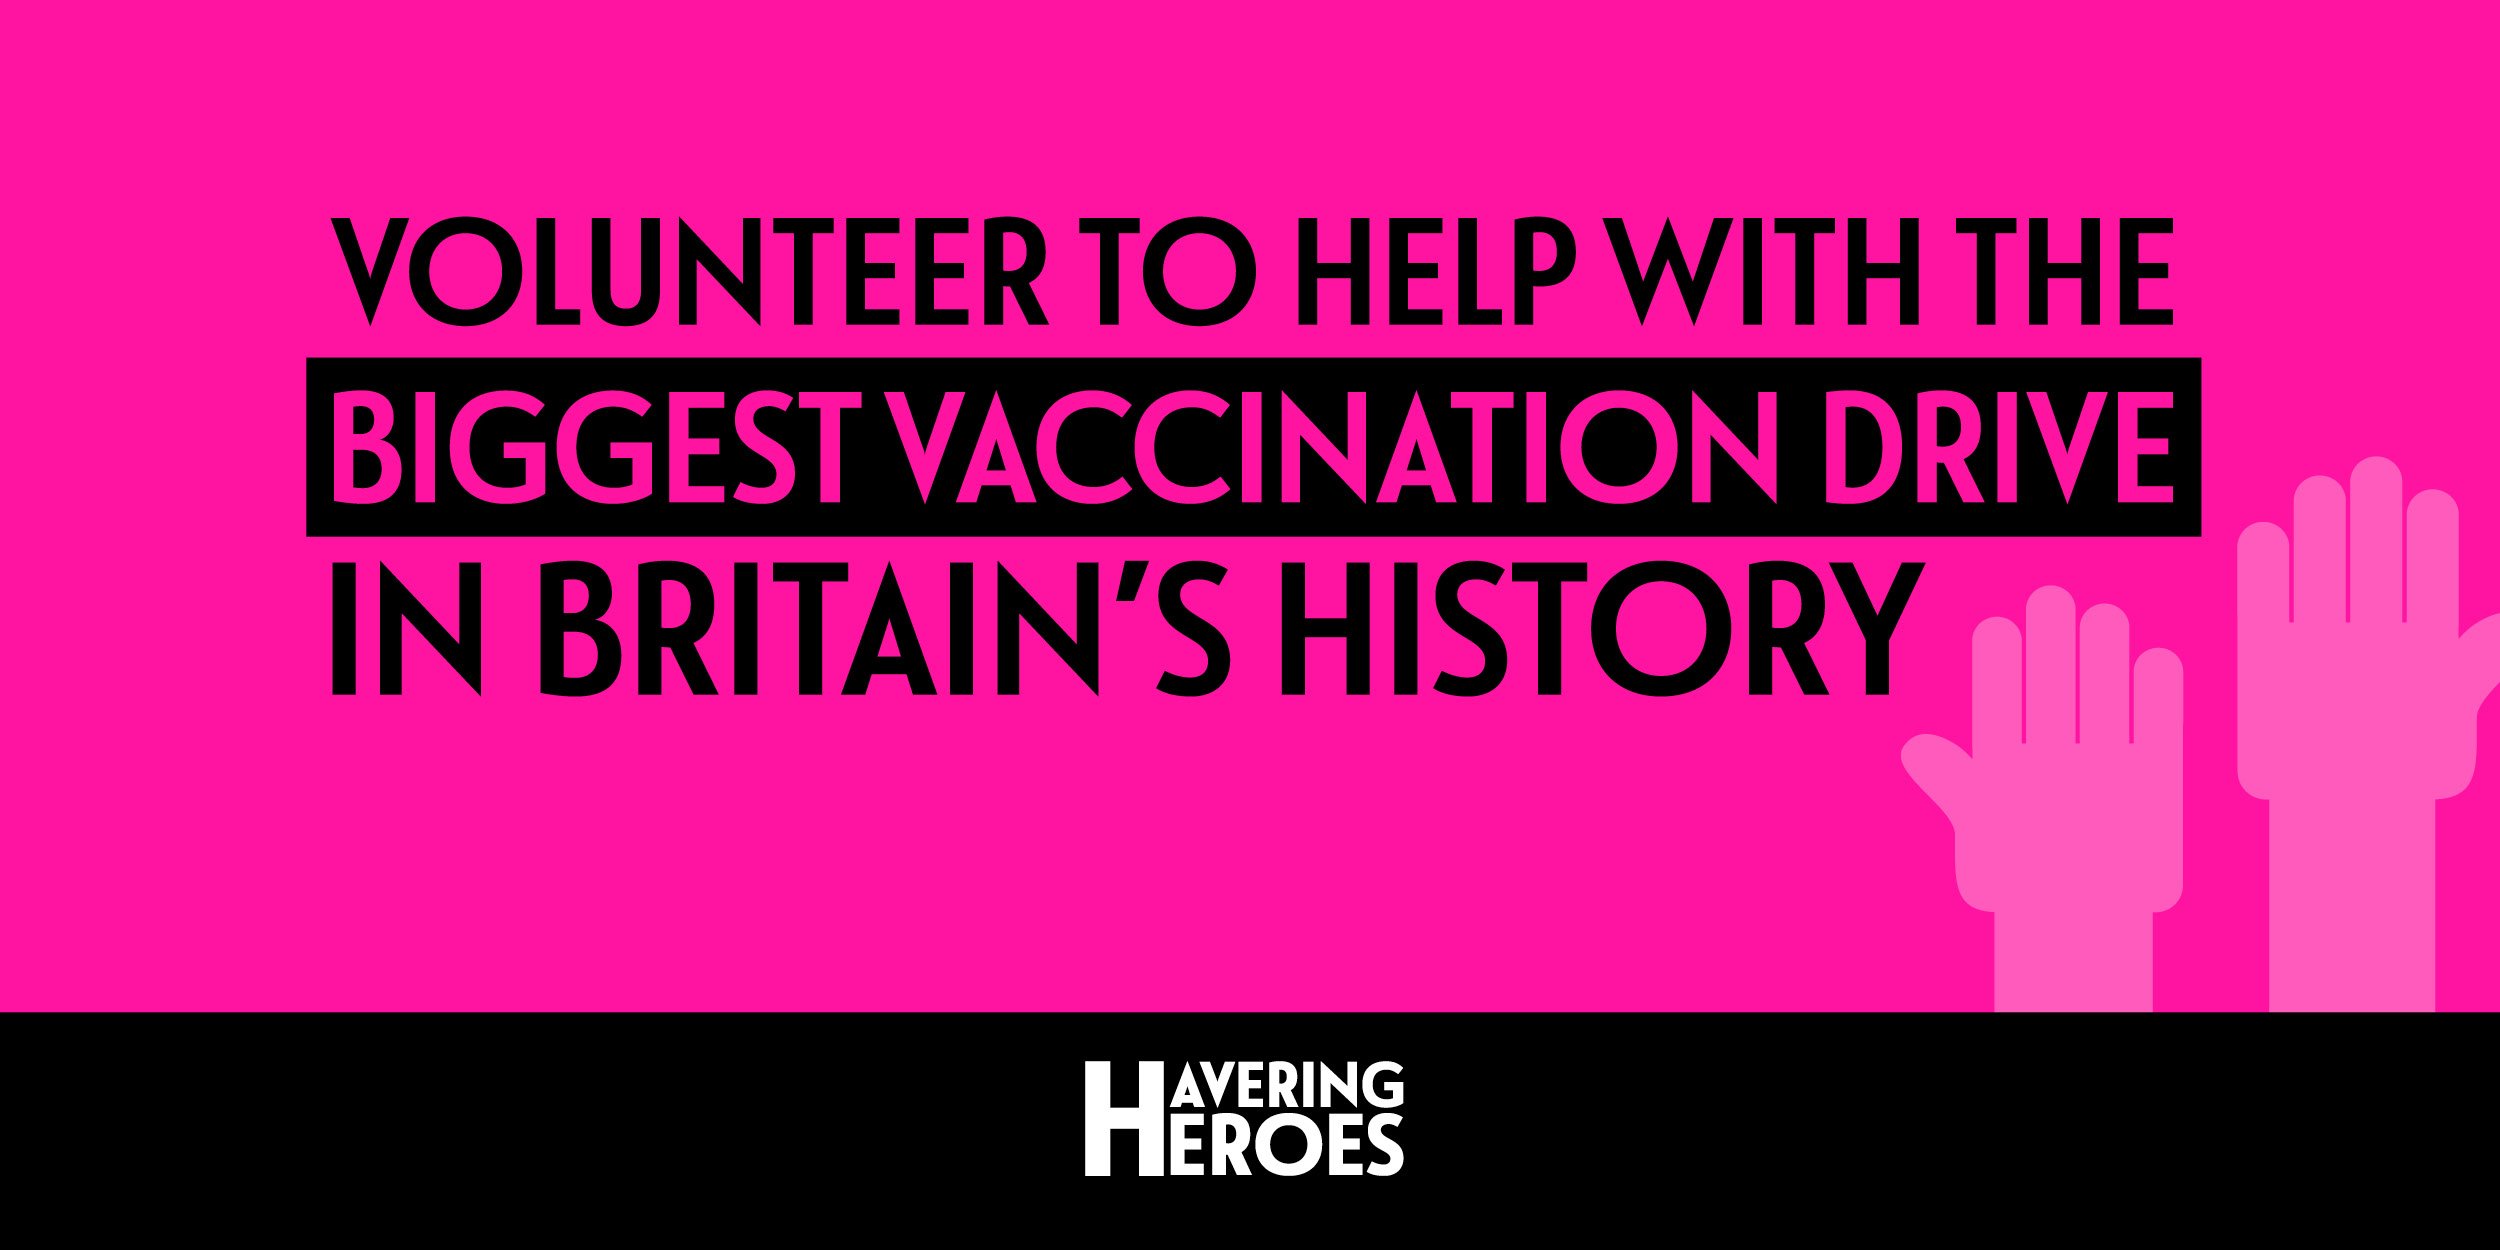 This is a graphic banner image in bright pink and black to support Havering Council's drive to get residents to volunteer for the borough's vaccination programme,